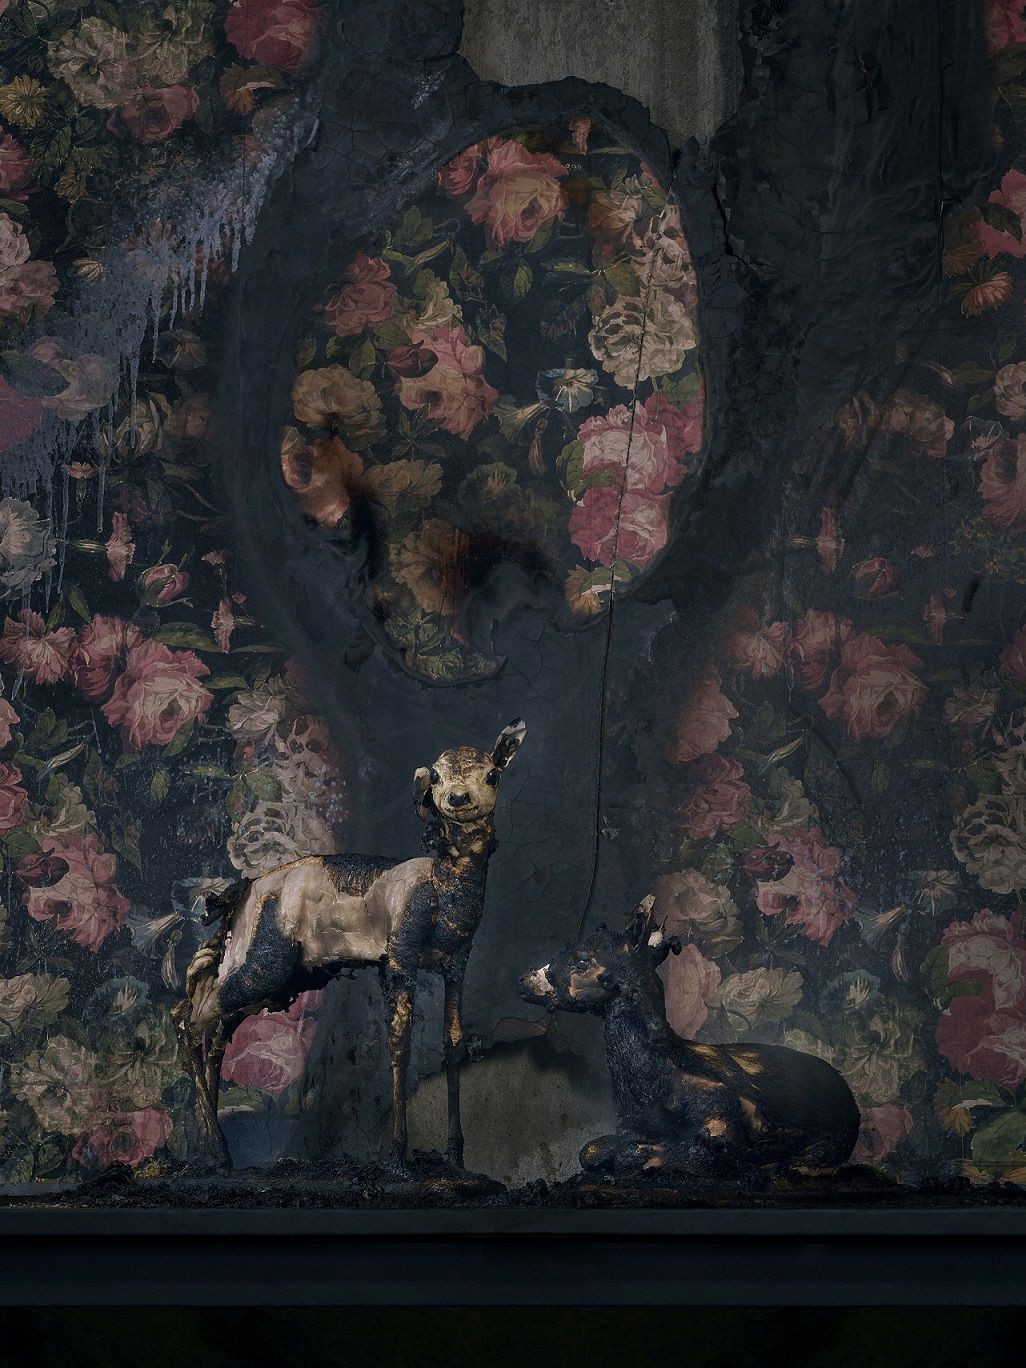 Fawns 2, Residence of Impermanence series - Christian Houge - Photography